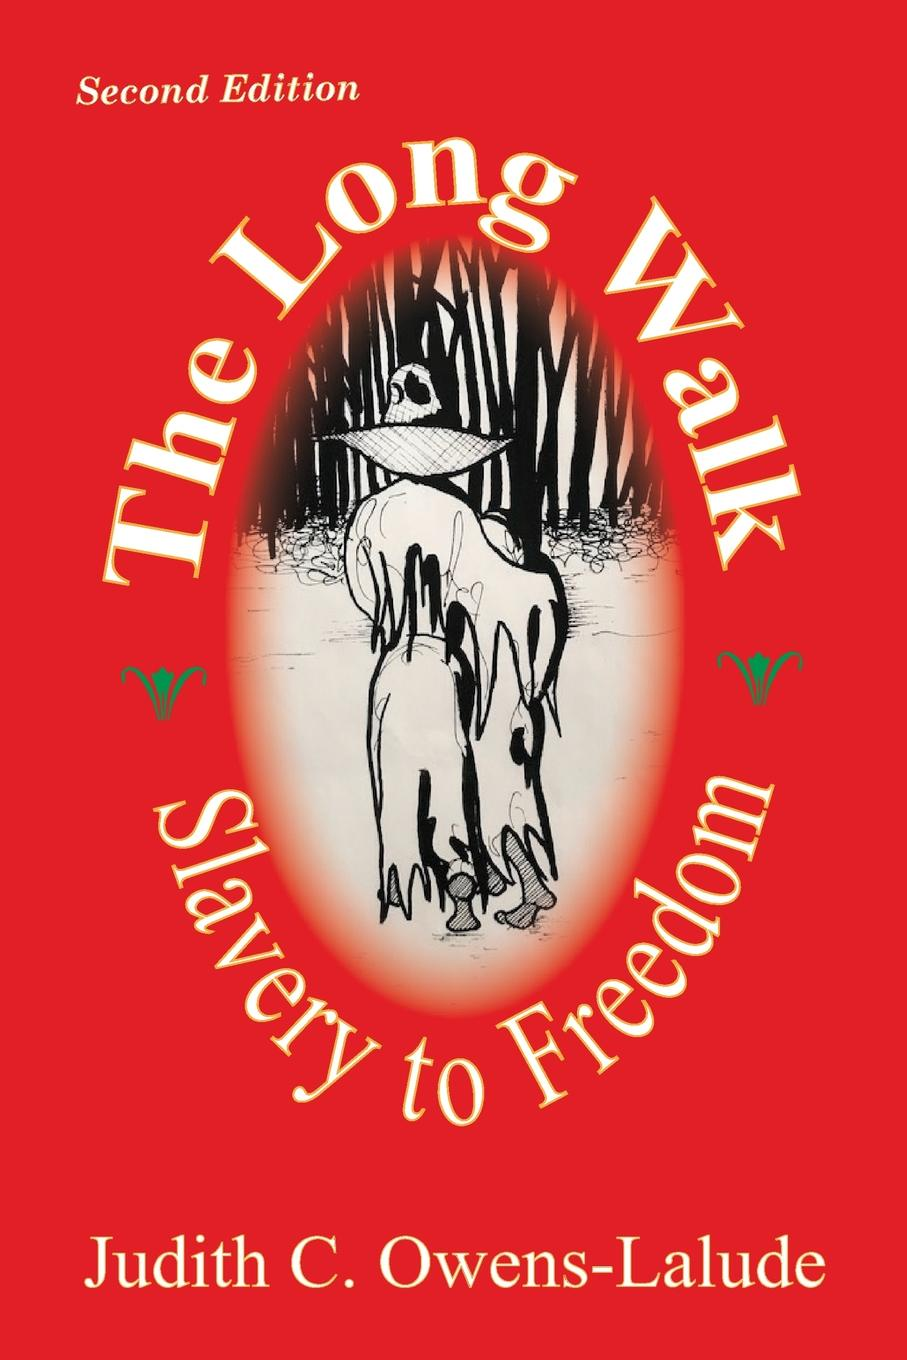 Judith C. Owens-Lalude The Long Walk. Slavery to Freedom the biography of mahommah gardo baquaqua his passage from slavery to freedom in africa and america